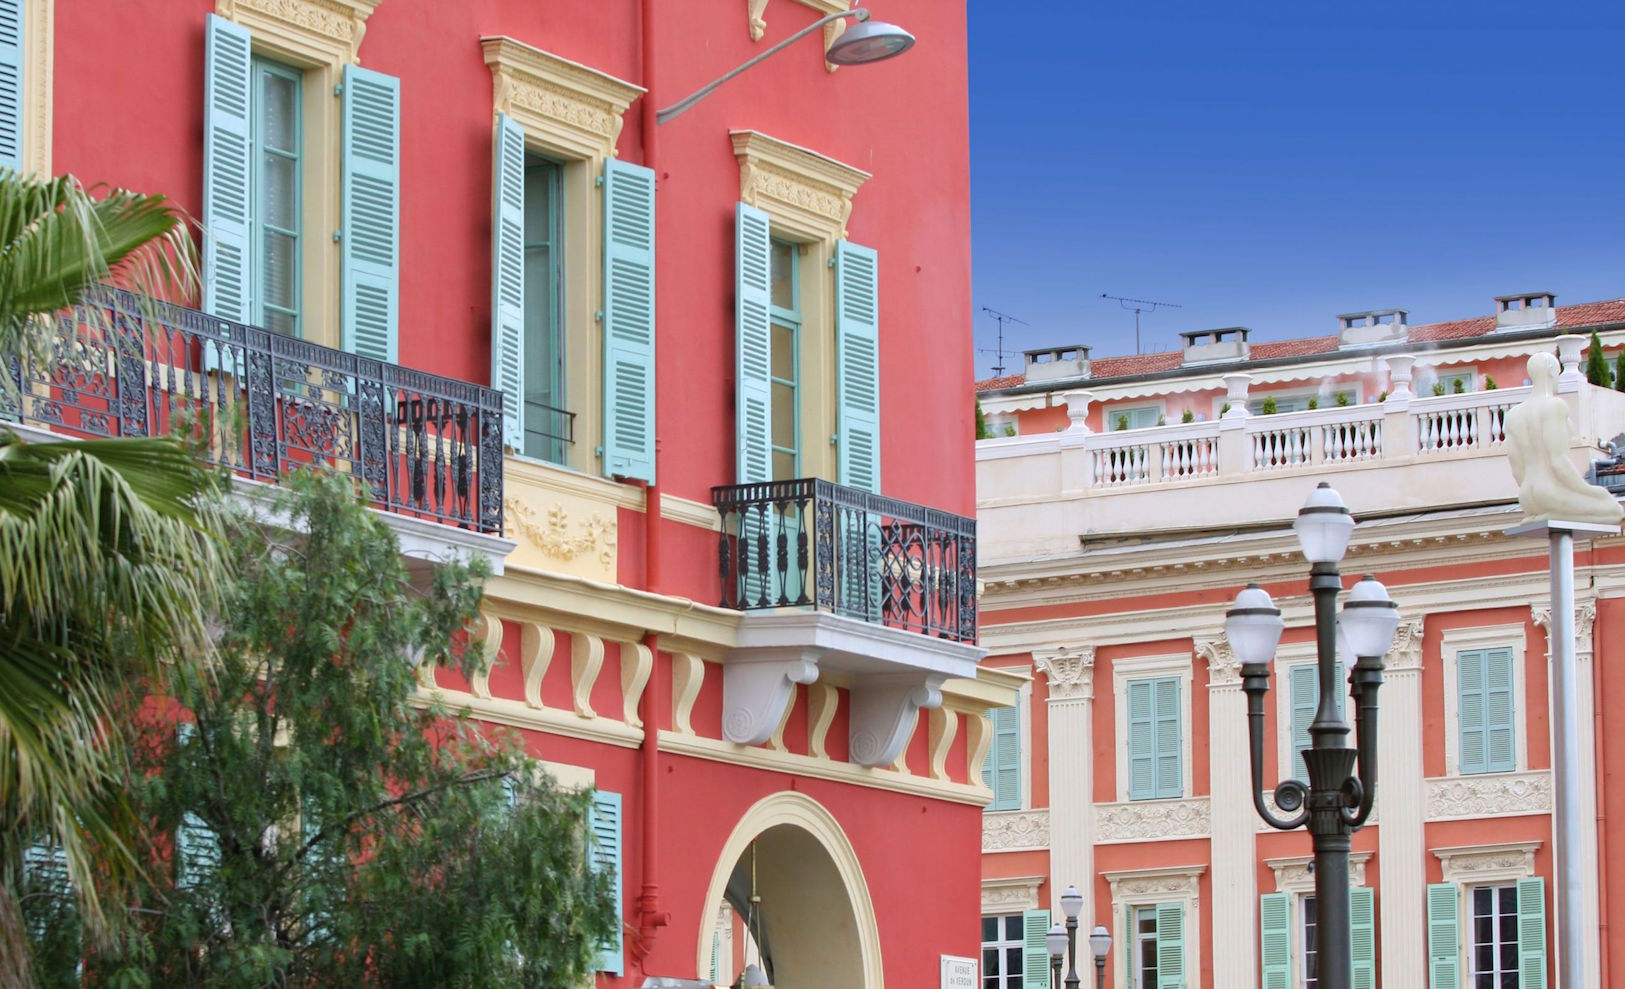 Full day tour - Nice city discovery